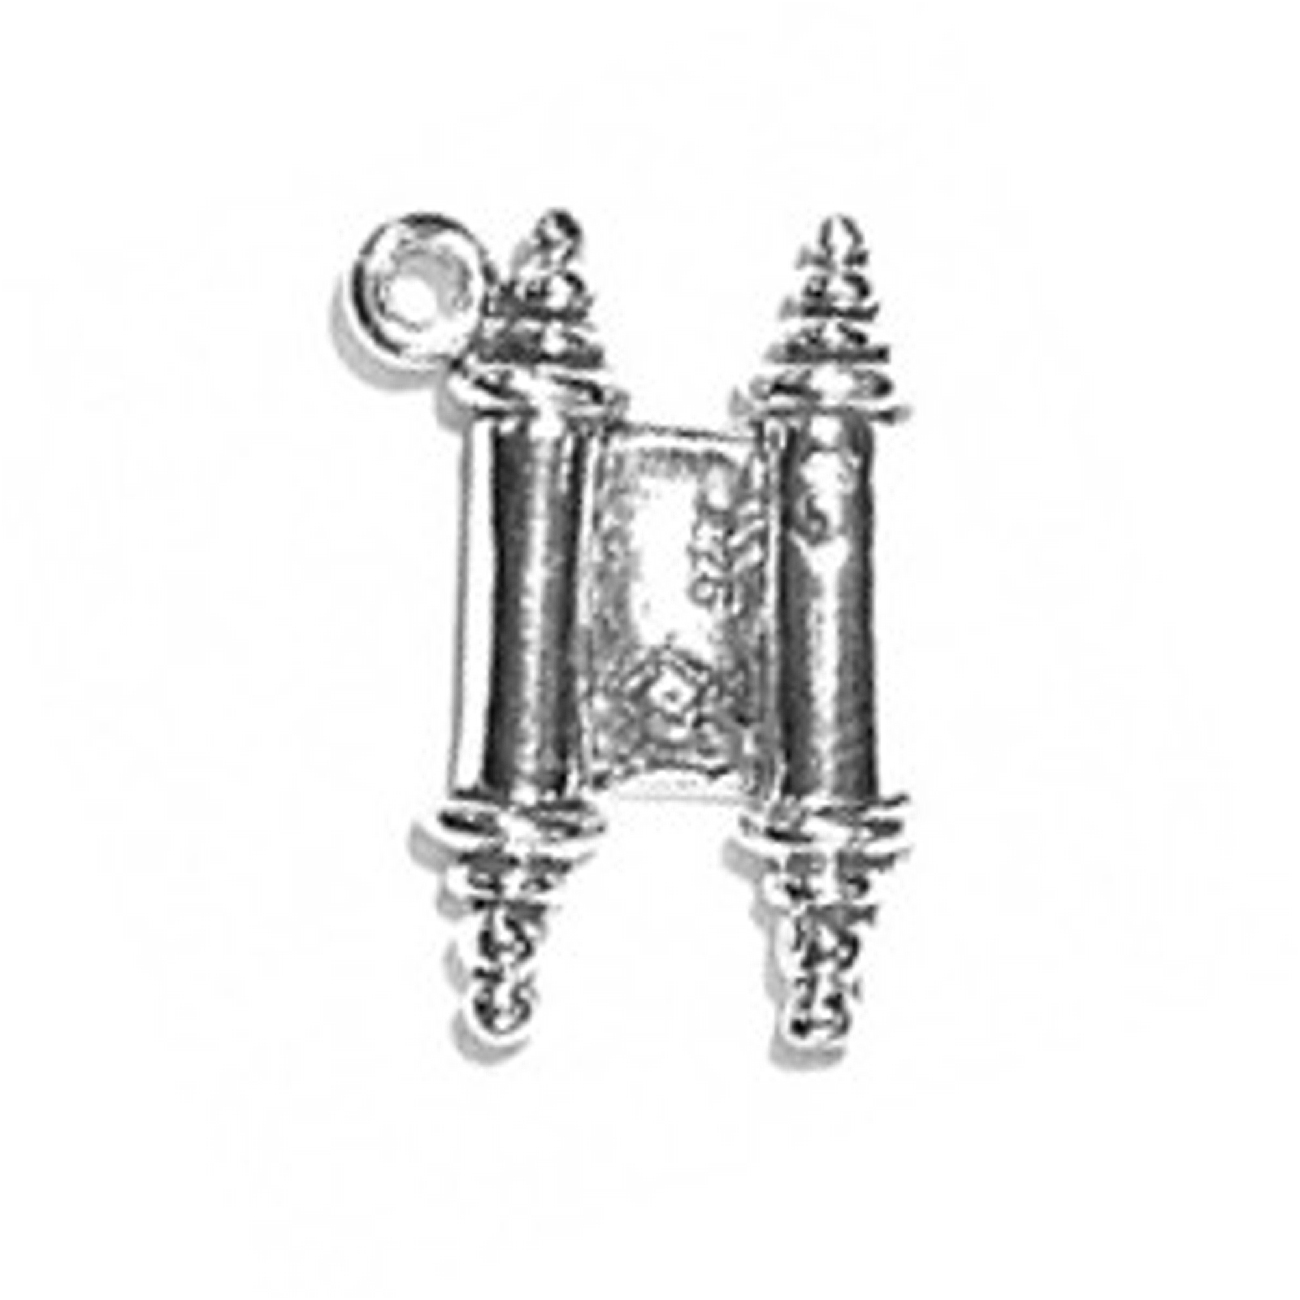 3D Ancient Or Modern Hebrew Torah Scroll Charm